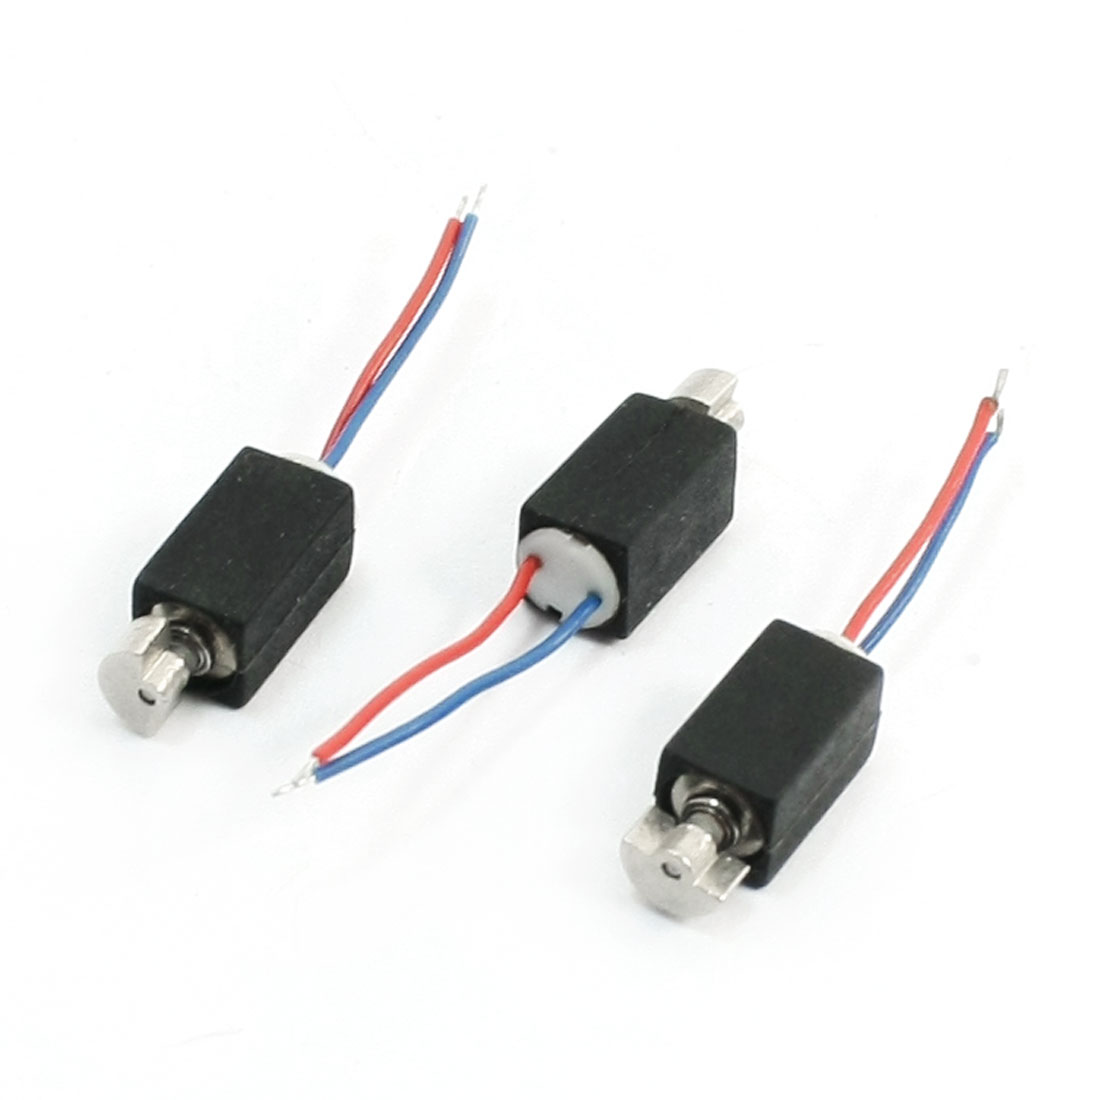 3-Pcs-1400RPM-Speed-3V-RC-Model-Helicopter-Micro-DC-Vibration-Motor